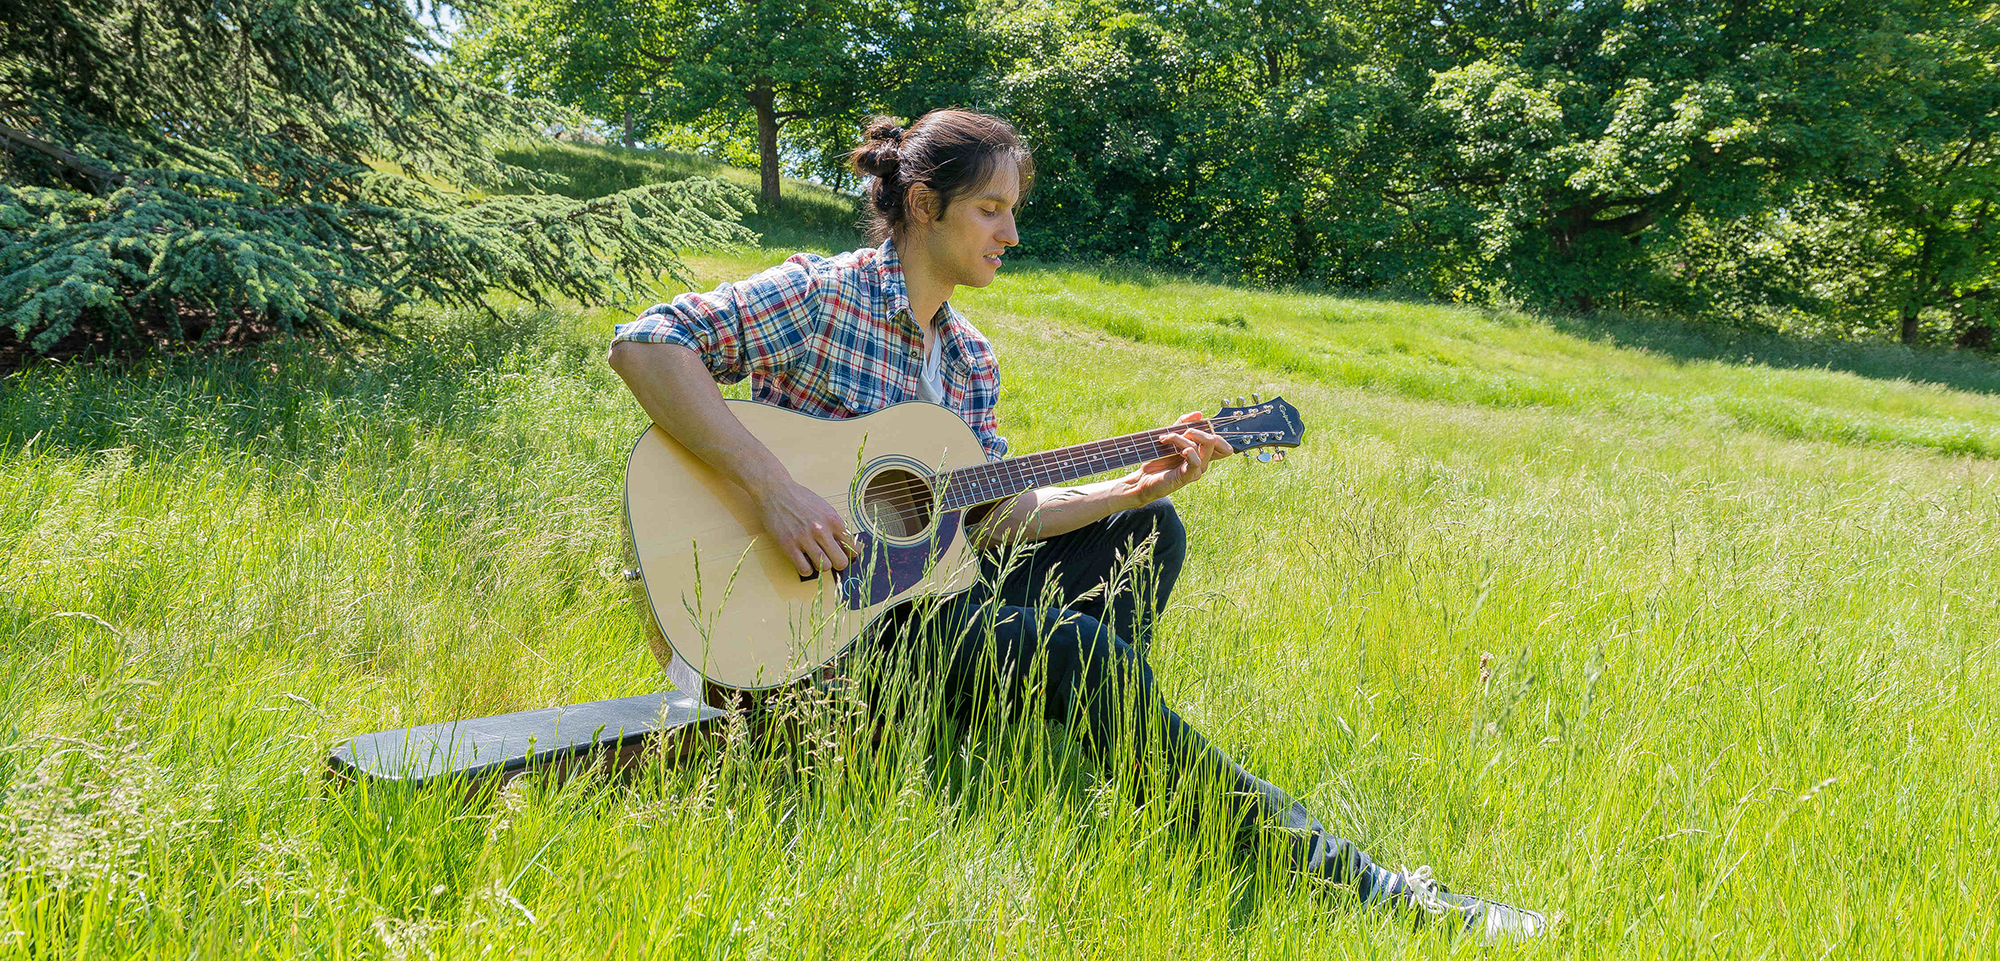 A guitarist enjoys the summer sun in London's Greenwich Park. Photo by Velar Grant/ZUMA Press/Corbis